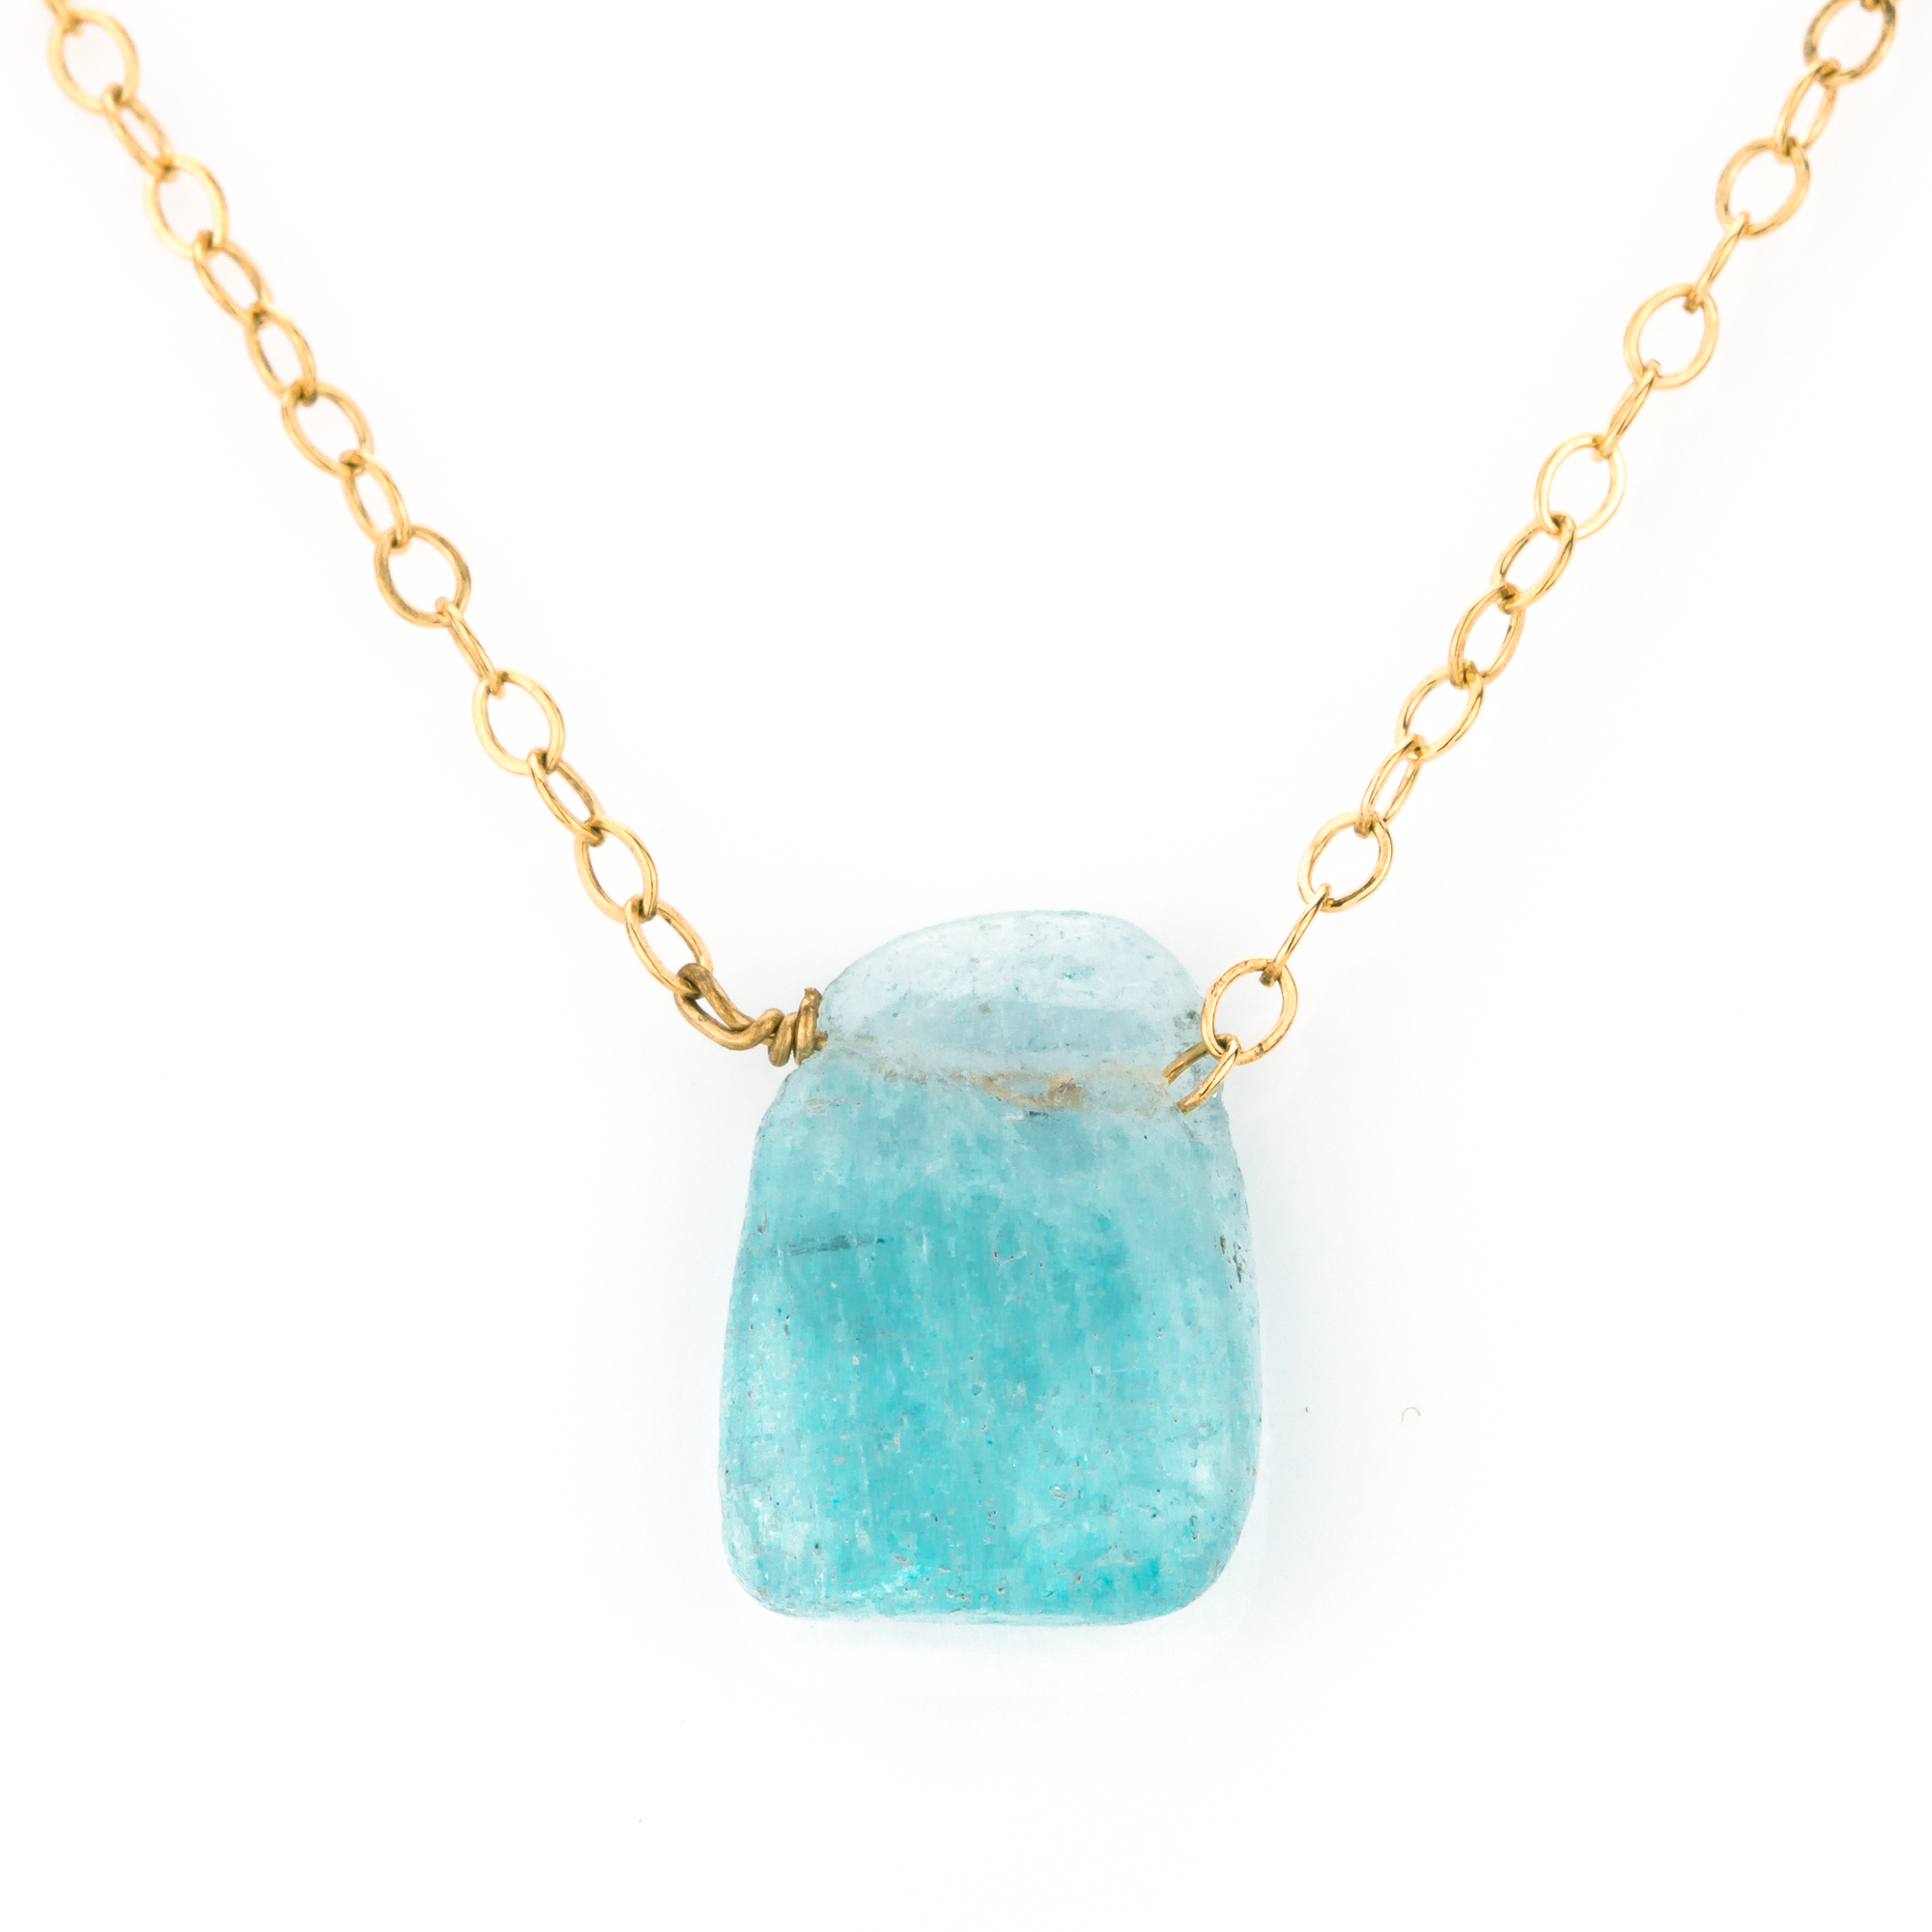 jewelry clasp diamond sale org at open aquamarine id with necklaces j for close more pendant gold